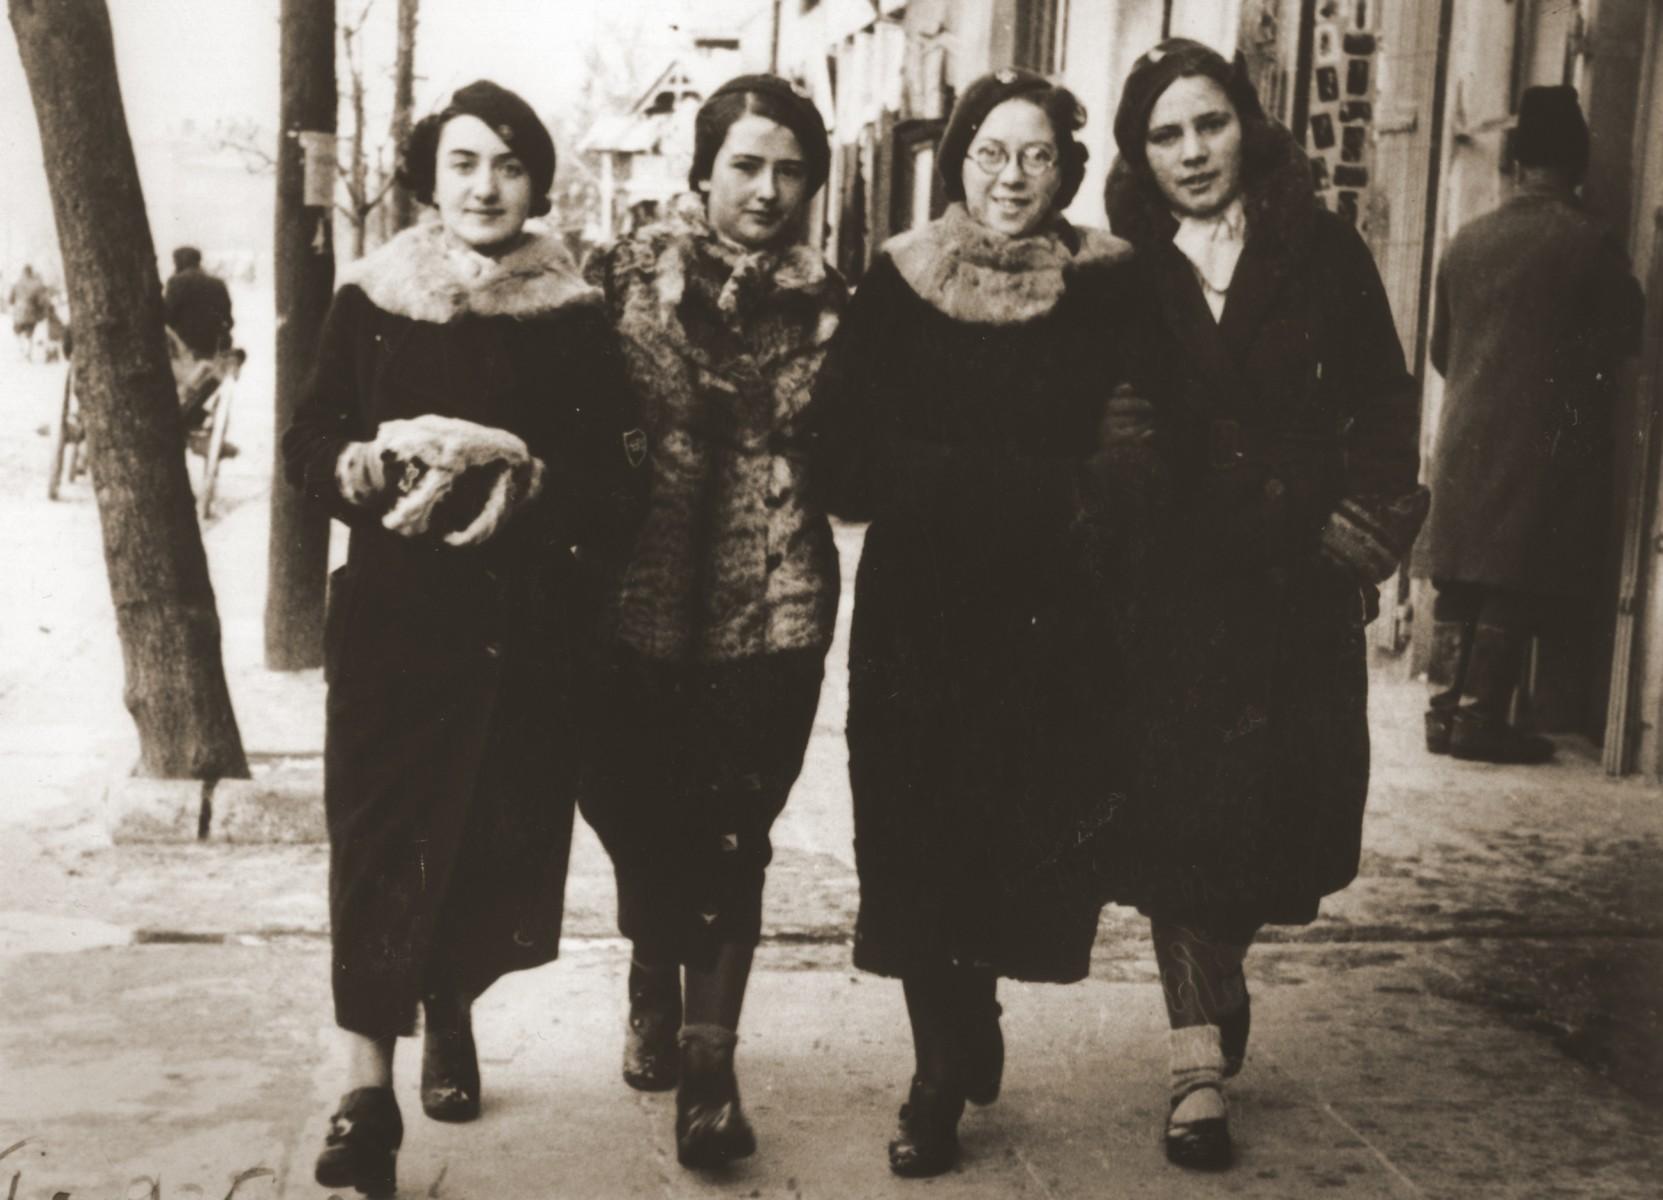 Four Jewish classmates walk along Lubelska Street in Chelm.  Pictured from left to right are: Fredka ?; Marysia Wilenko; Felicja Berland; and Hanke Aljos.